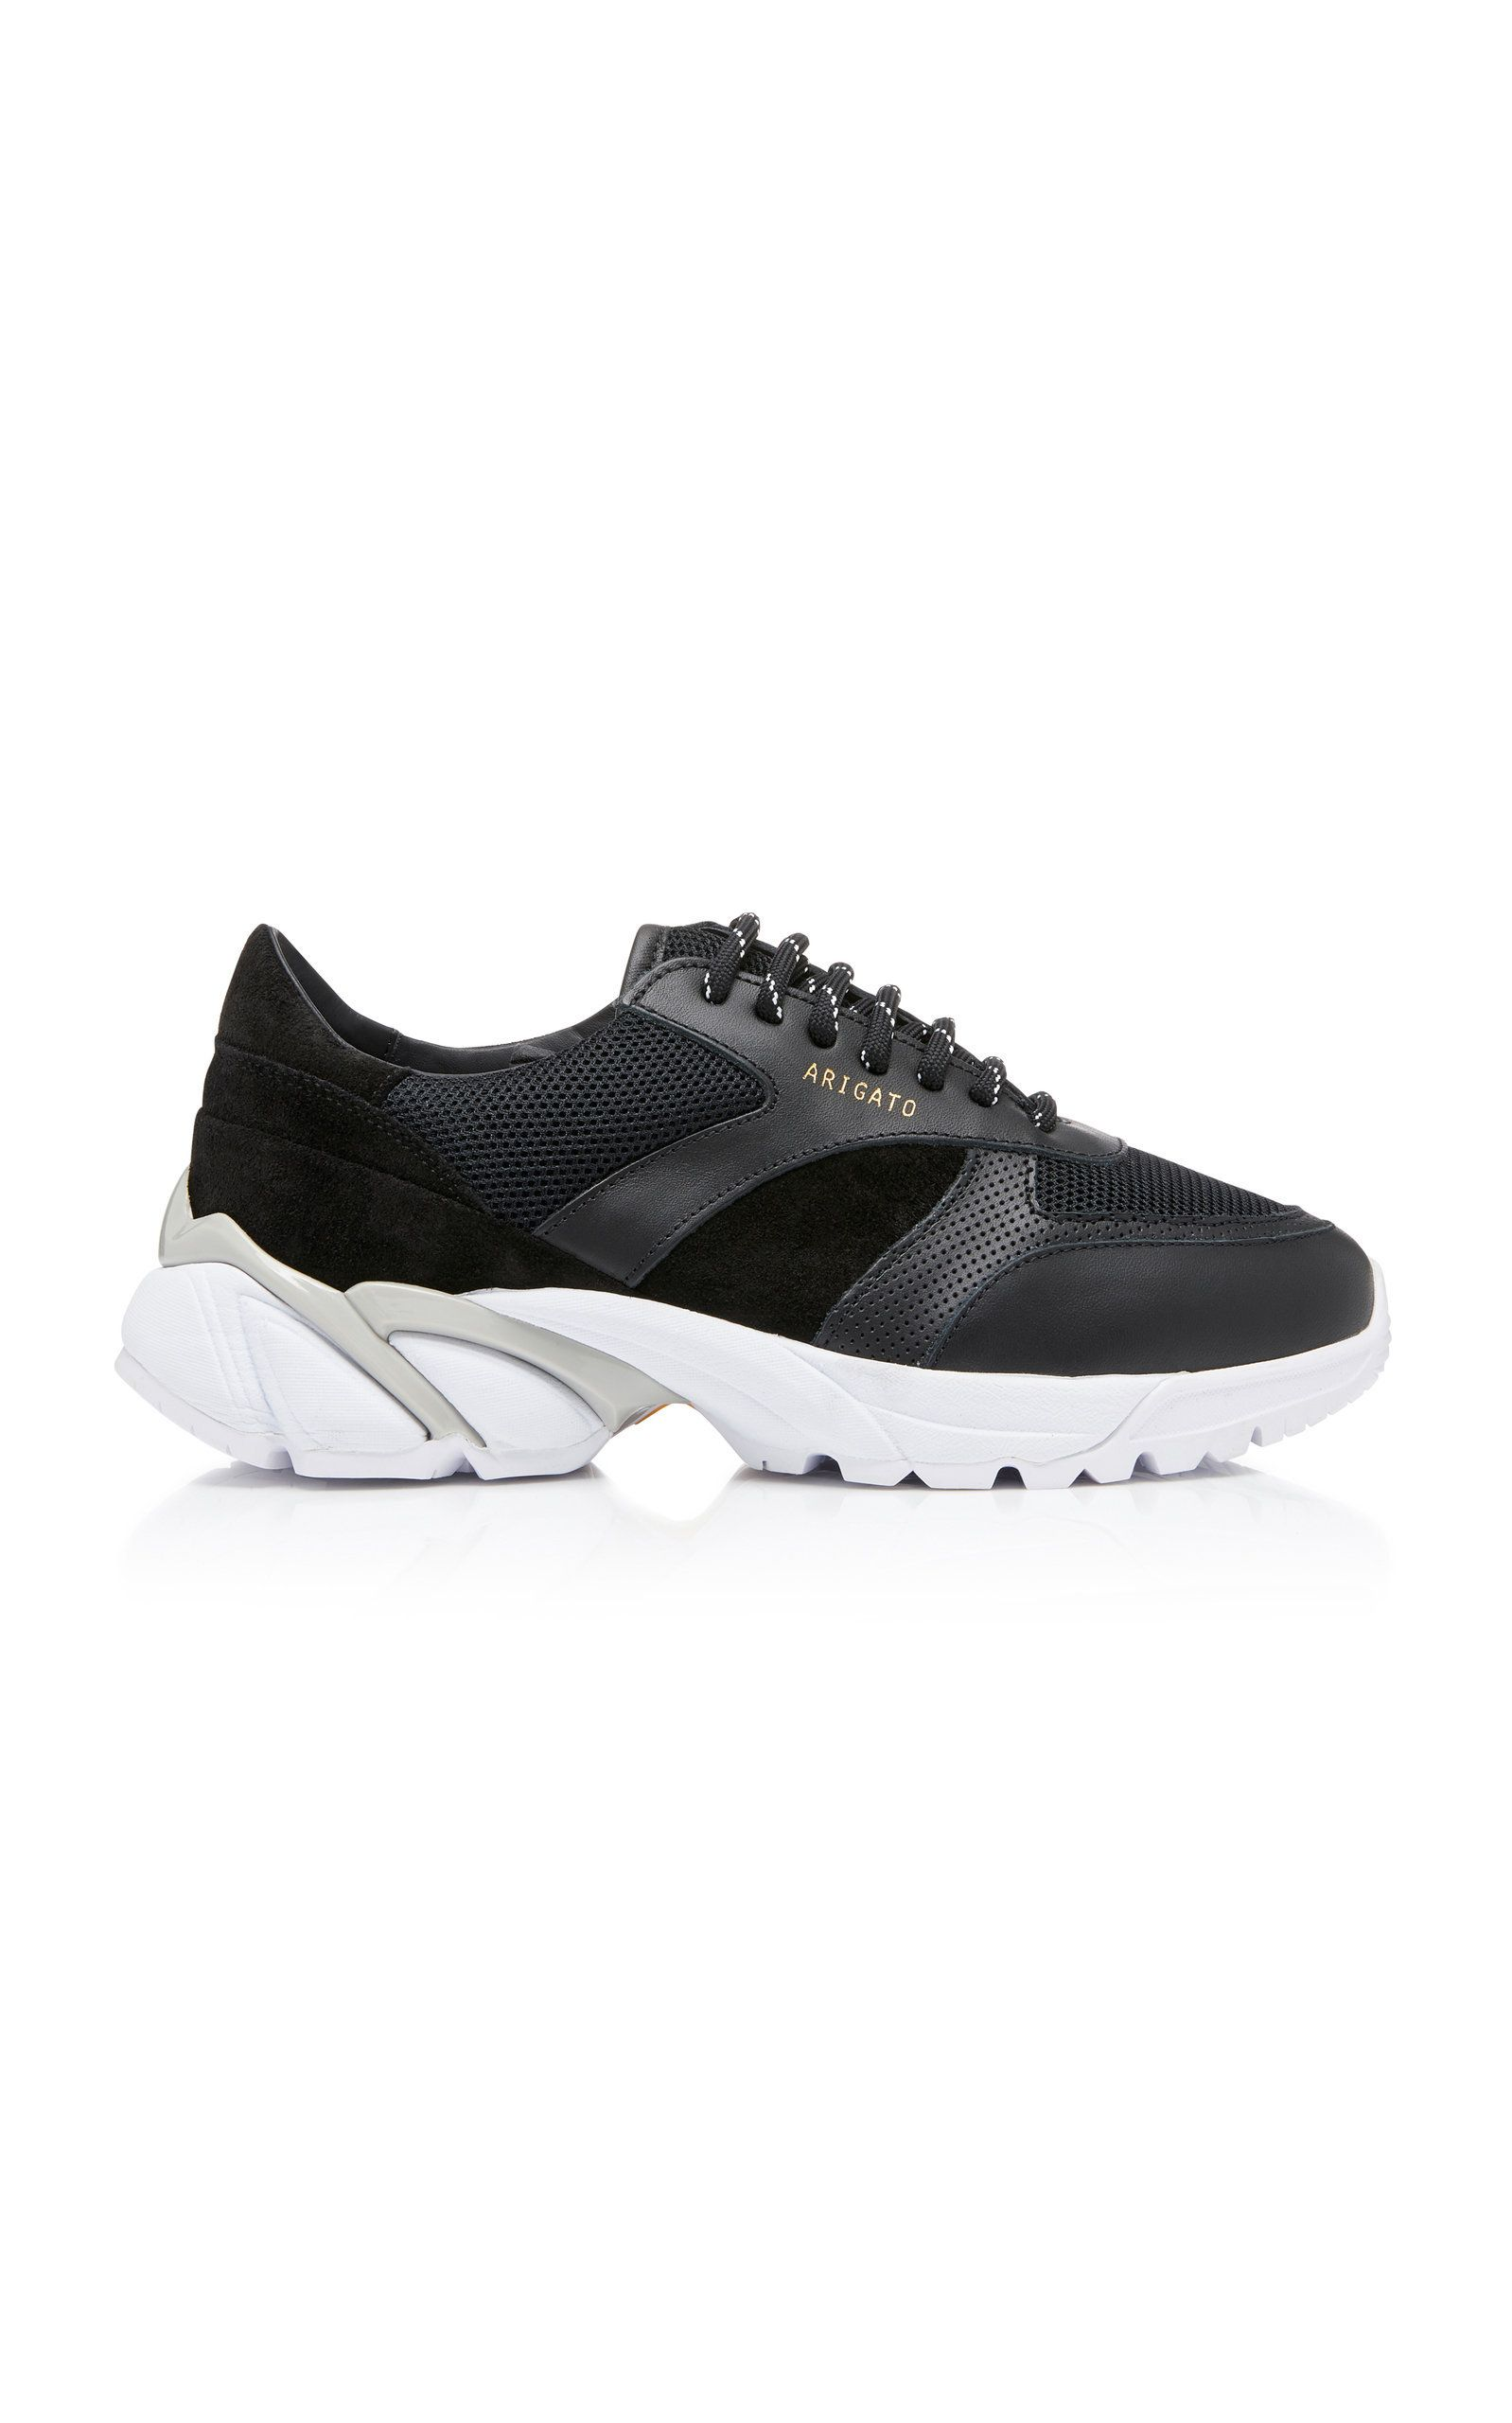 84d9a346a56 Tech Runner Core Leather-Trimmed Mesh Sneakers